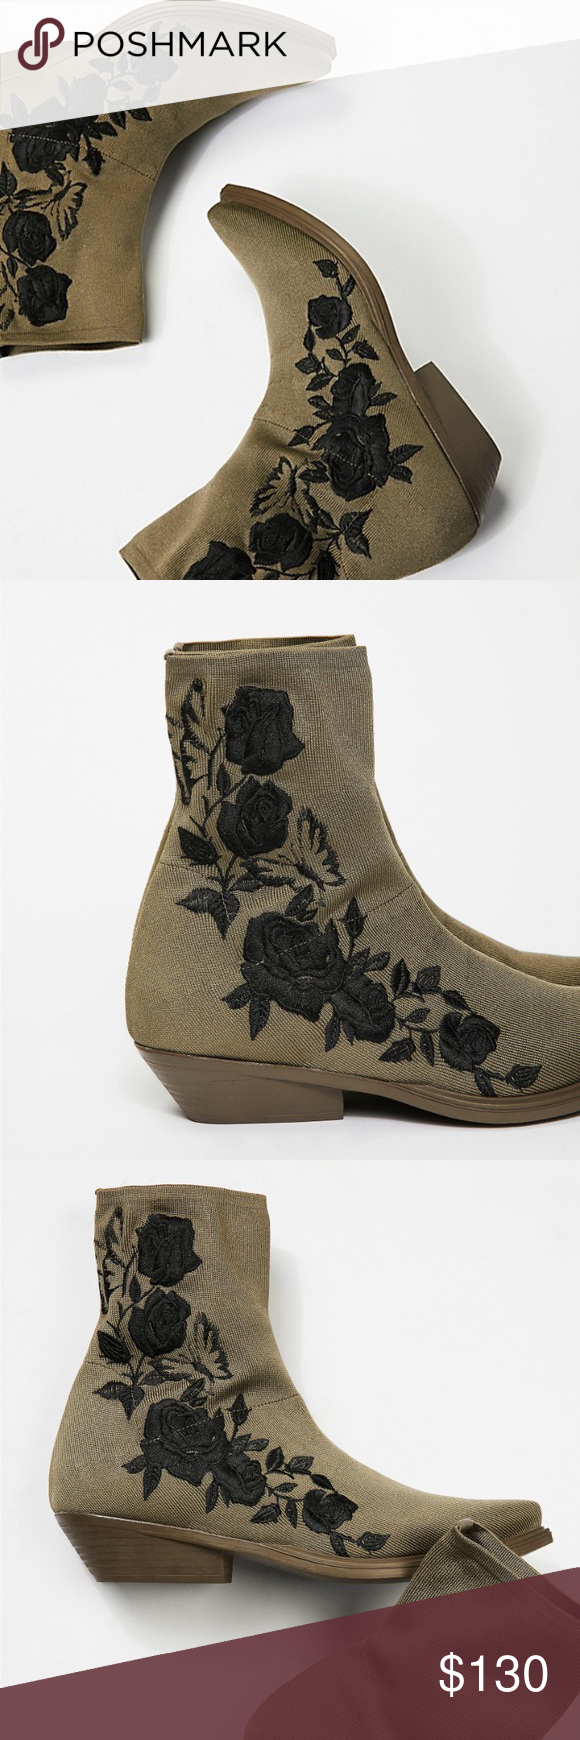 cf564fe02fb9 Black Roses Ankle Boot Italian made stretch stocking ankle boots featured  in a military green. • Contrast floral embroidery • Tonal rubber outsole  and heel ...